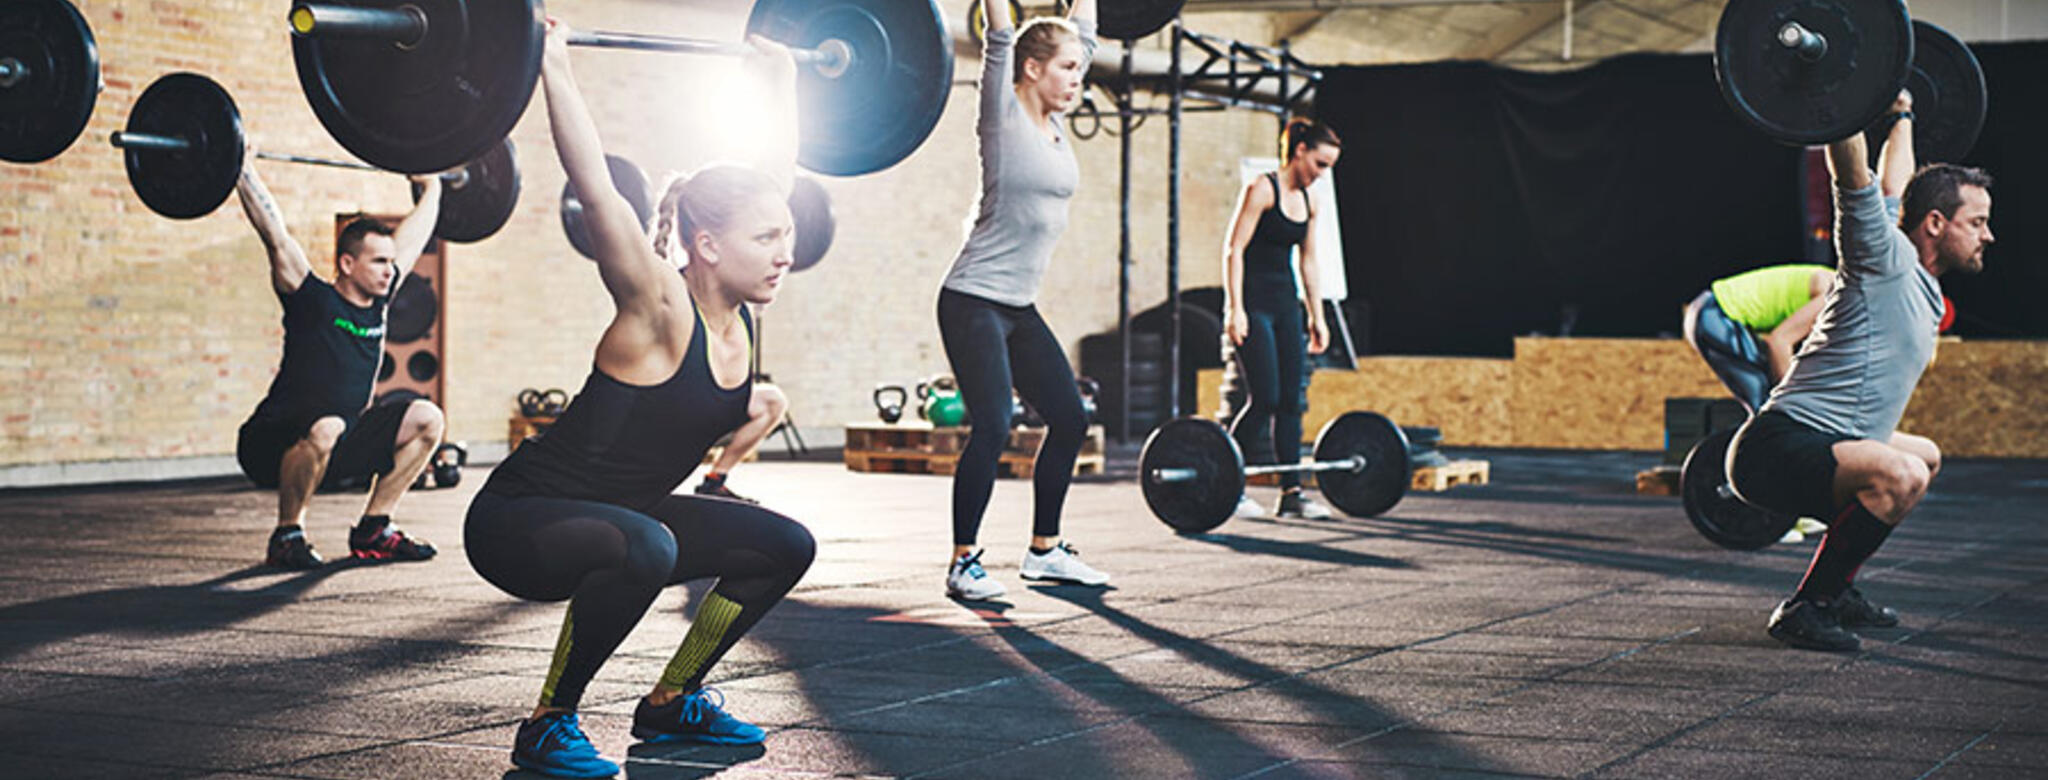 Weightlifting class booked with MINDBODY dynamic pricing